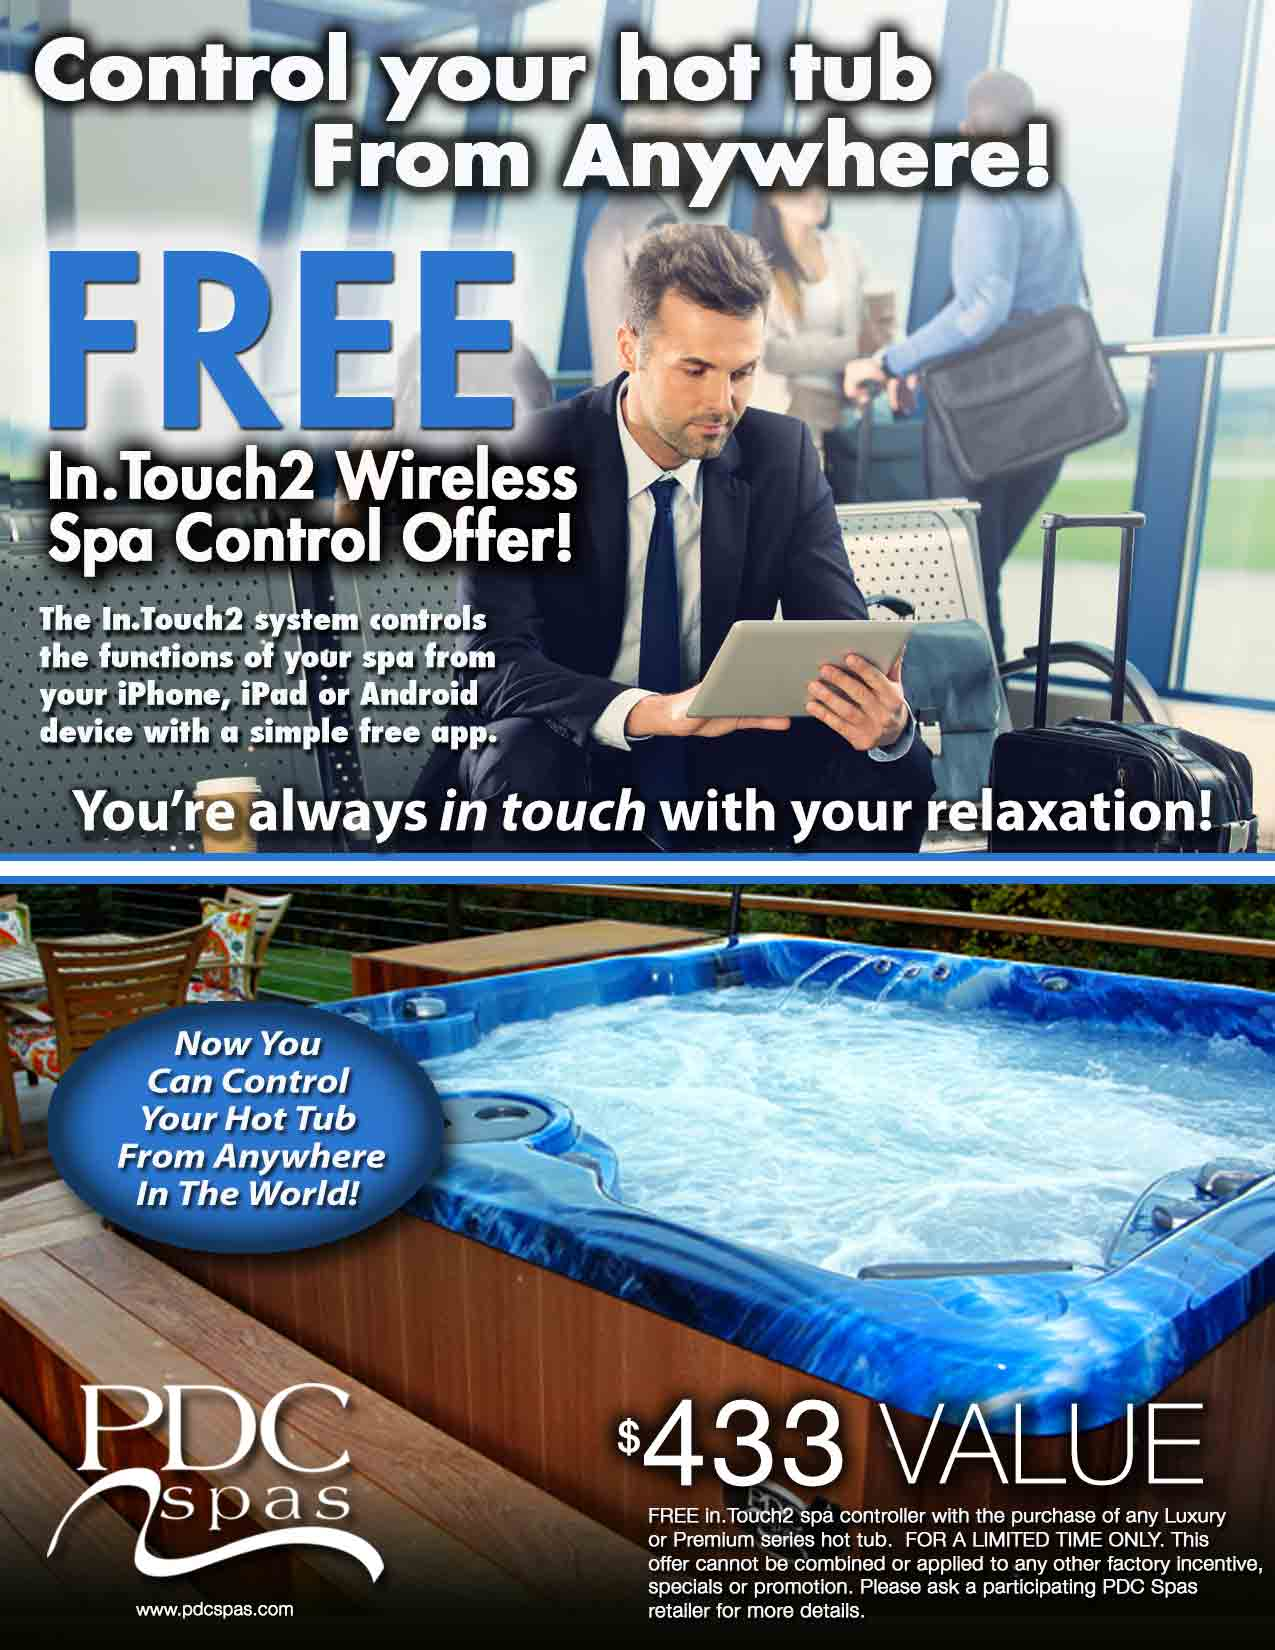 Free In.Touch 2 wireless spa control offer